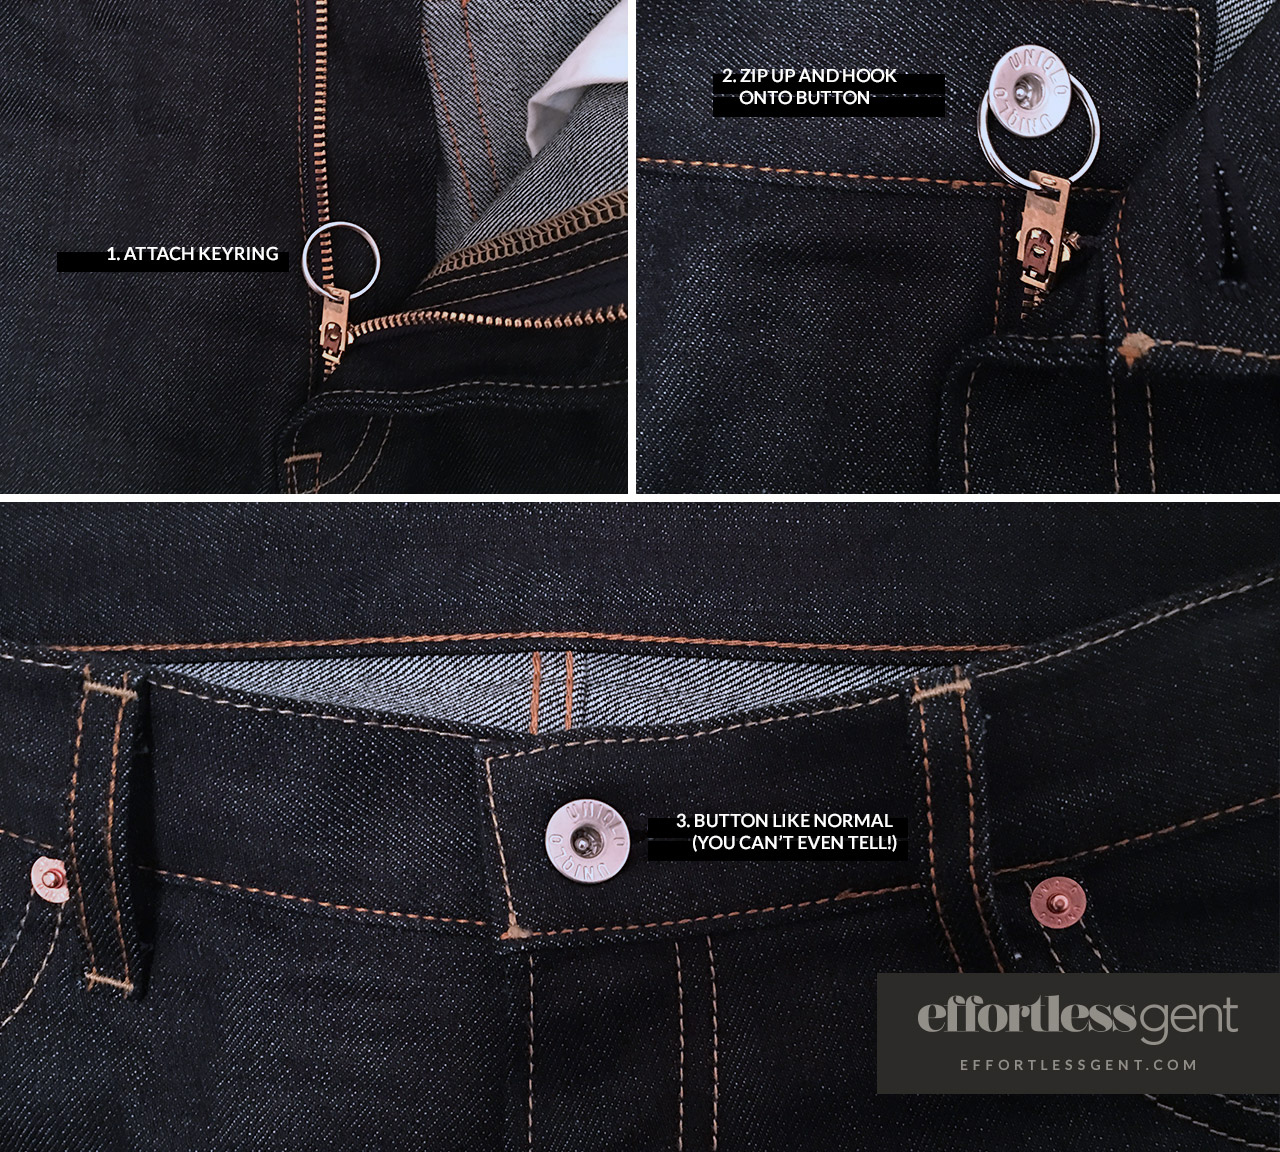 pants and keyring zipper hack